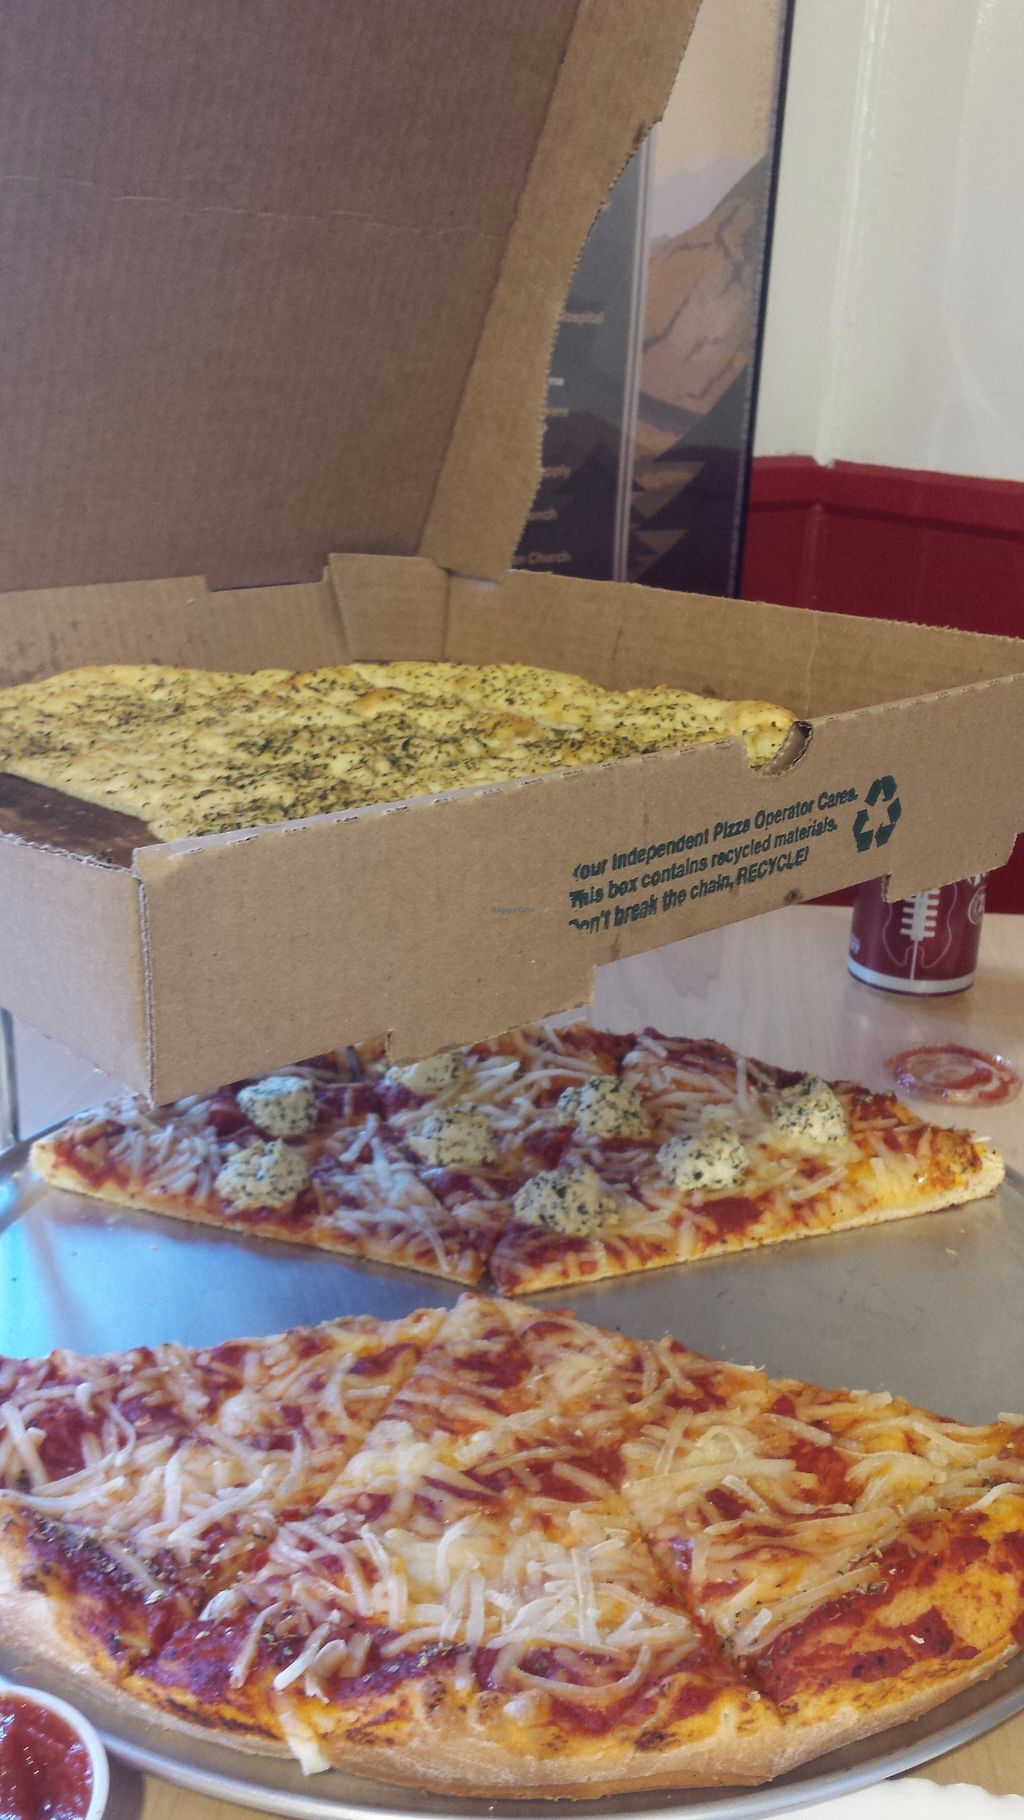 """Photo of Trail Rider Pizza  by <a href=""""/members/profile/Cameron2786"""">Cameron2786</a> <br/>Top: vegan bread sticks (garlic, basil, olive oil, amazing!) Bottom: vegan ricotta (tofu-based) and violife vegan parmesan pizza (amazing crust!) <br/> November 14, 2017  - <a href='/contact/abuse/image/102196/325409'>Report</a>"""